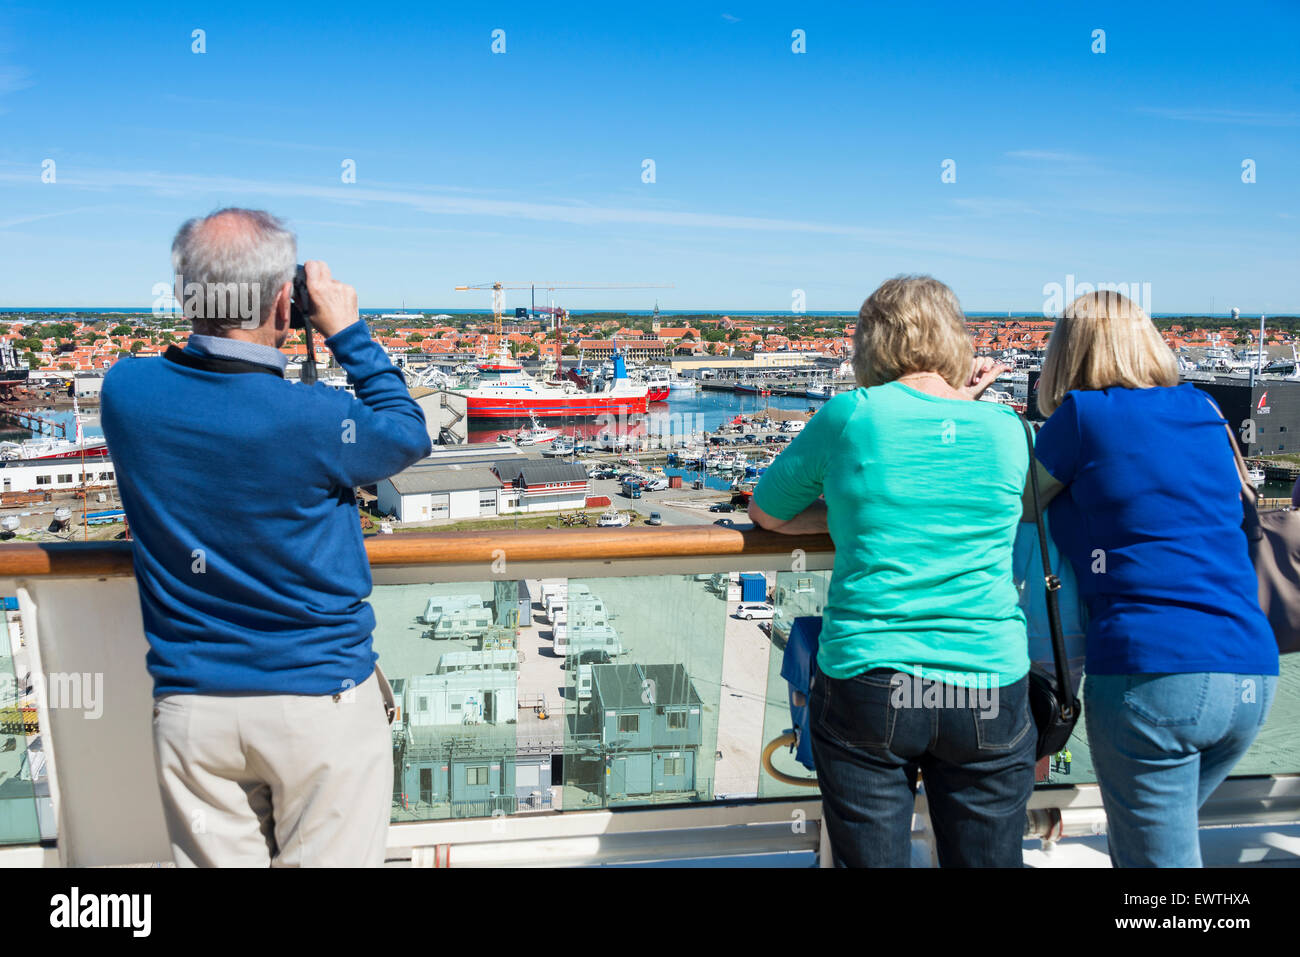 Les passagers de visualisation de Pont Royal Caribbean 'Brilliance of the seas' bateau de croisière, Photo Stock